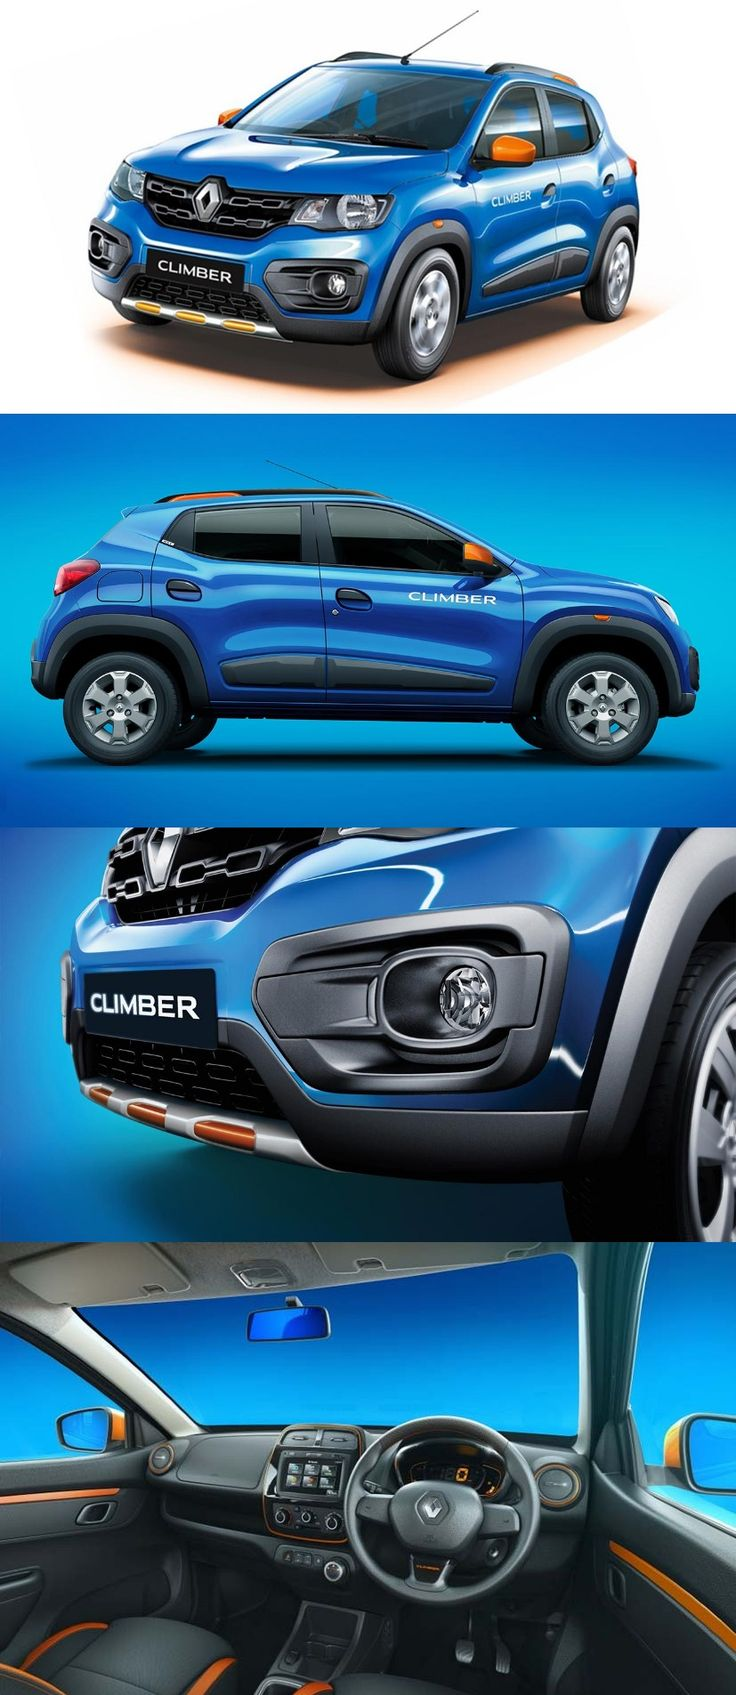 Renault Kwid Climber Edition Launched in India at INR 4.30 Lakh